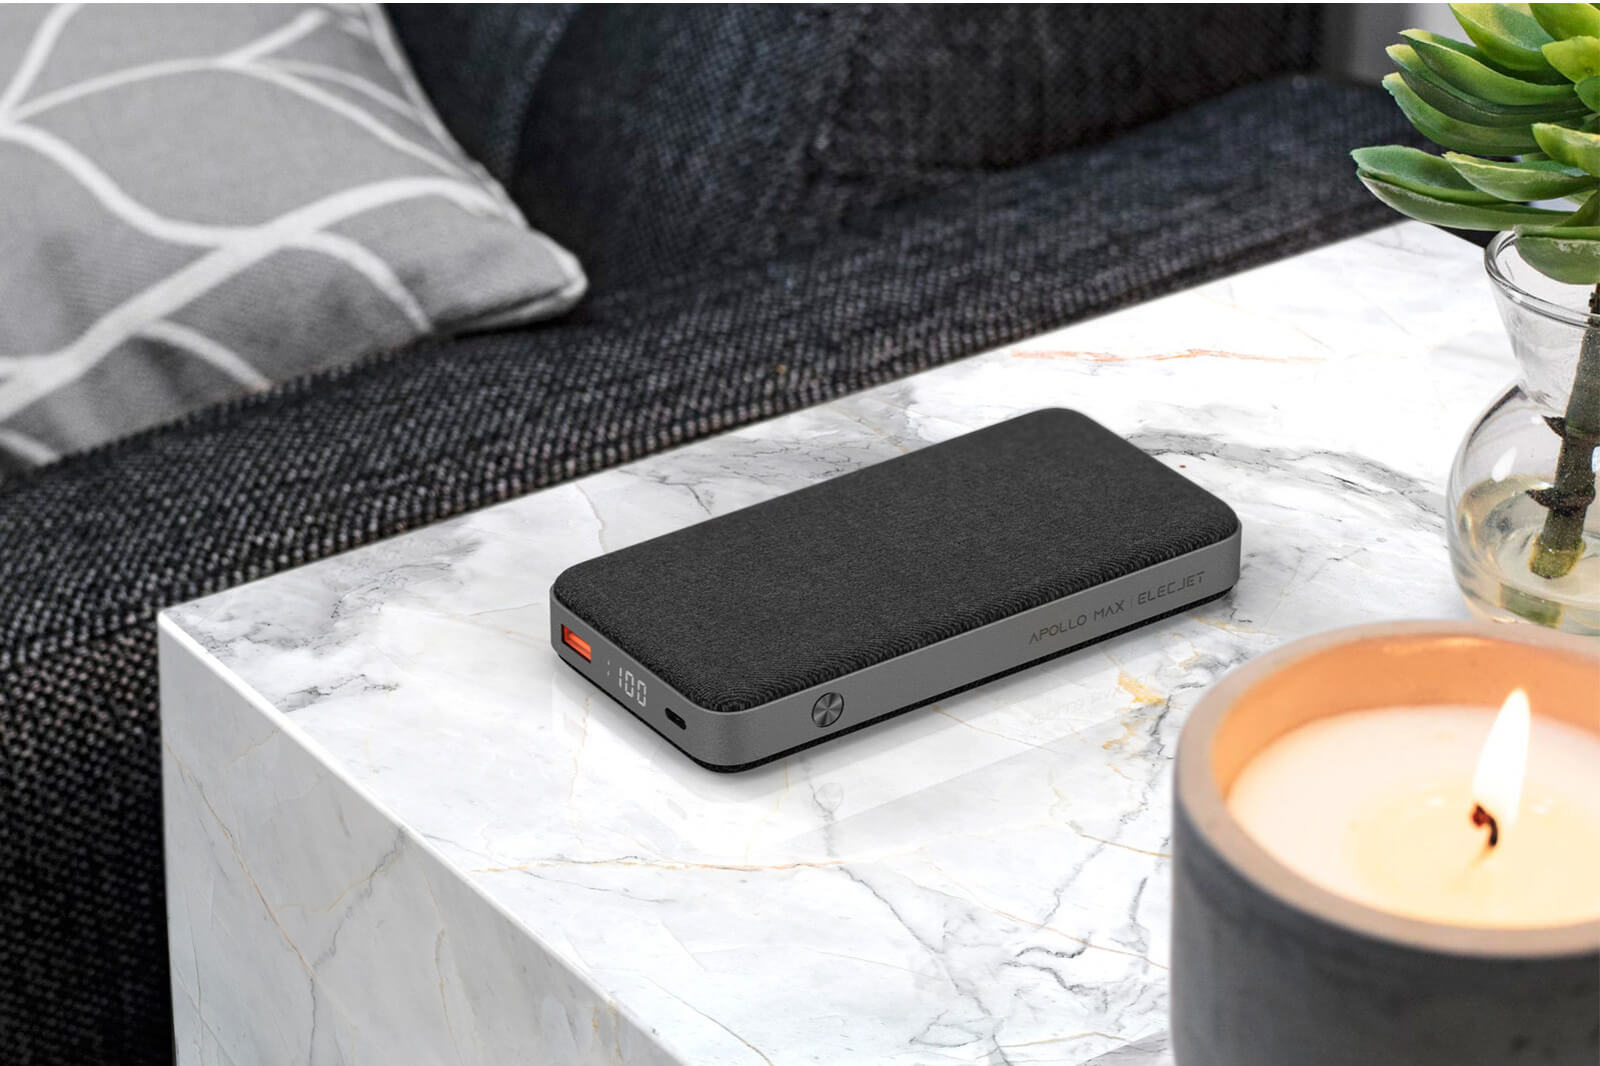 This 10,000mAh power bank claims it can recharge in just 19 minutes